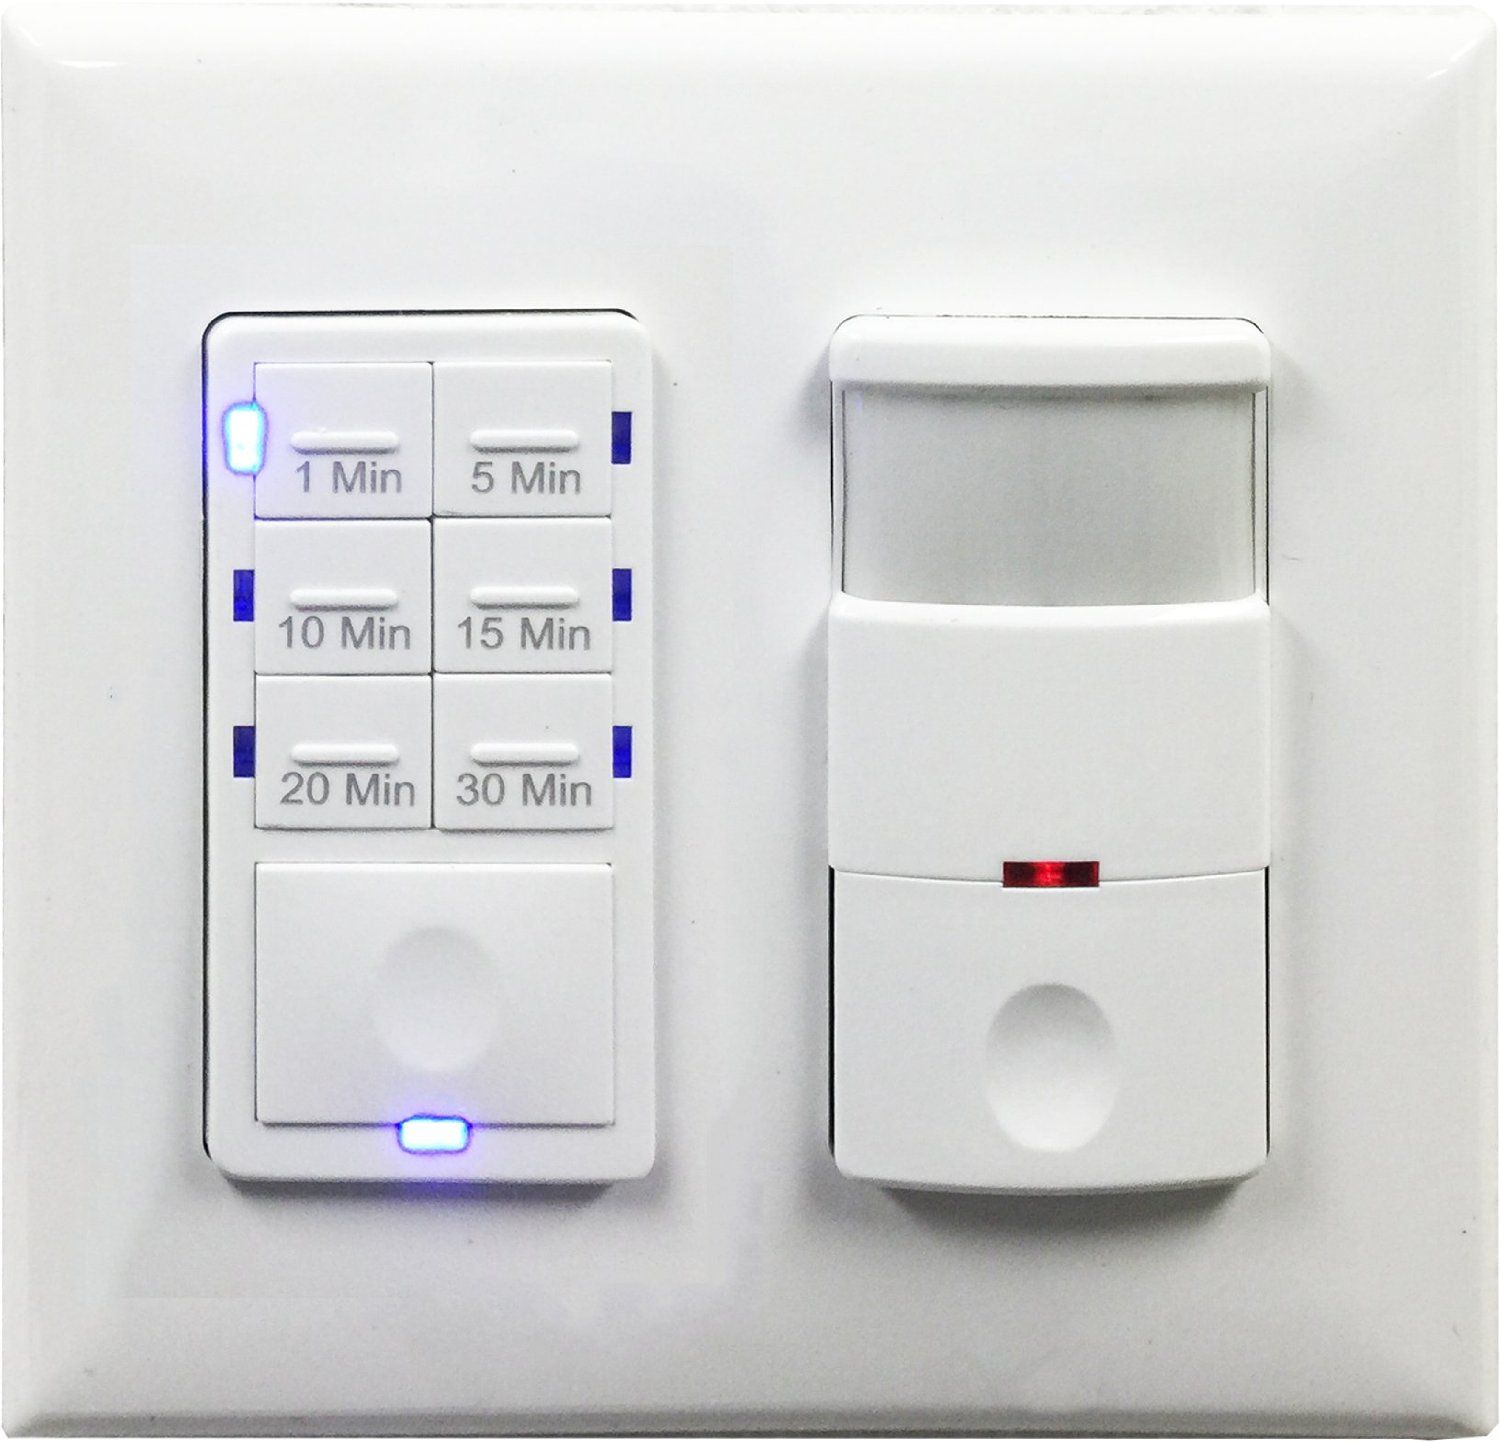 TOPGREENER TDOS5HET06A Bathroom Fan Timer Switch and